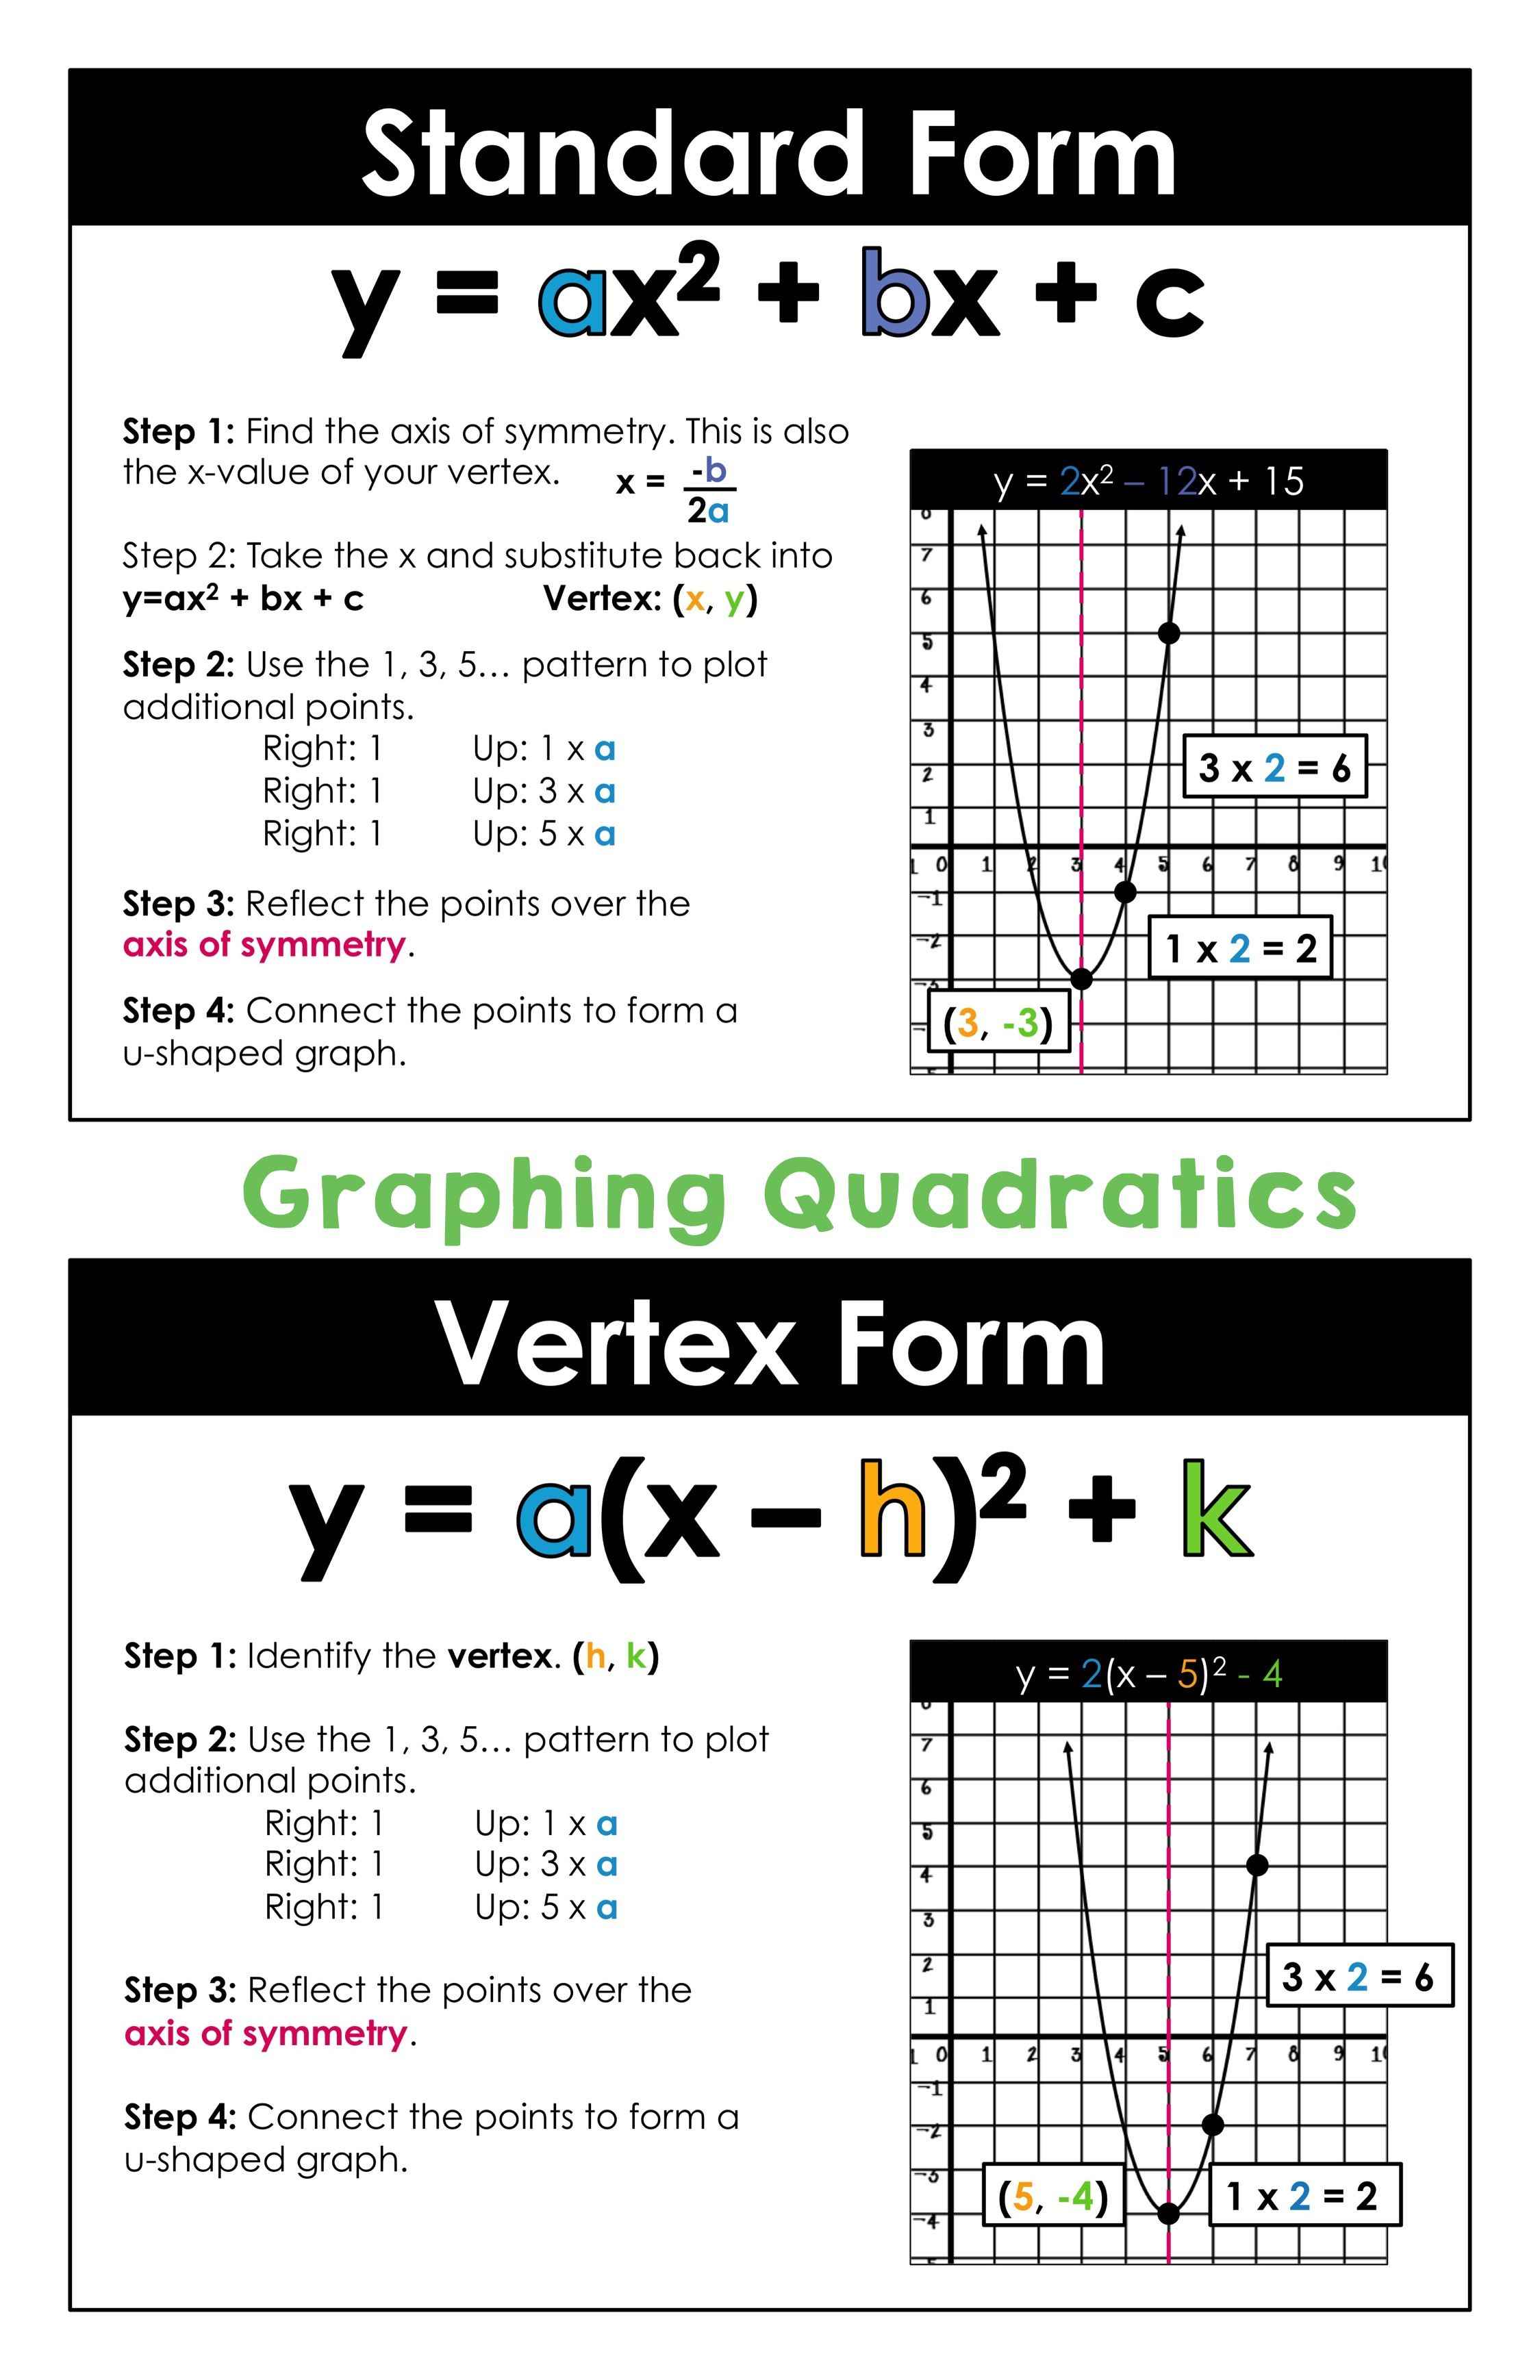 Graphing Quadratics In Standard Form And Vertex Form Includes